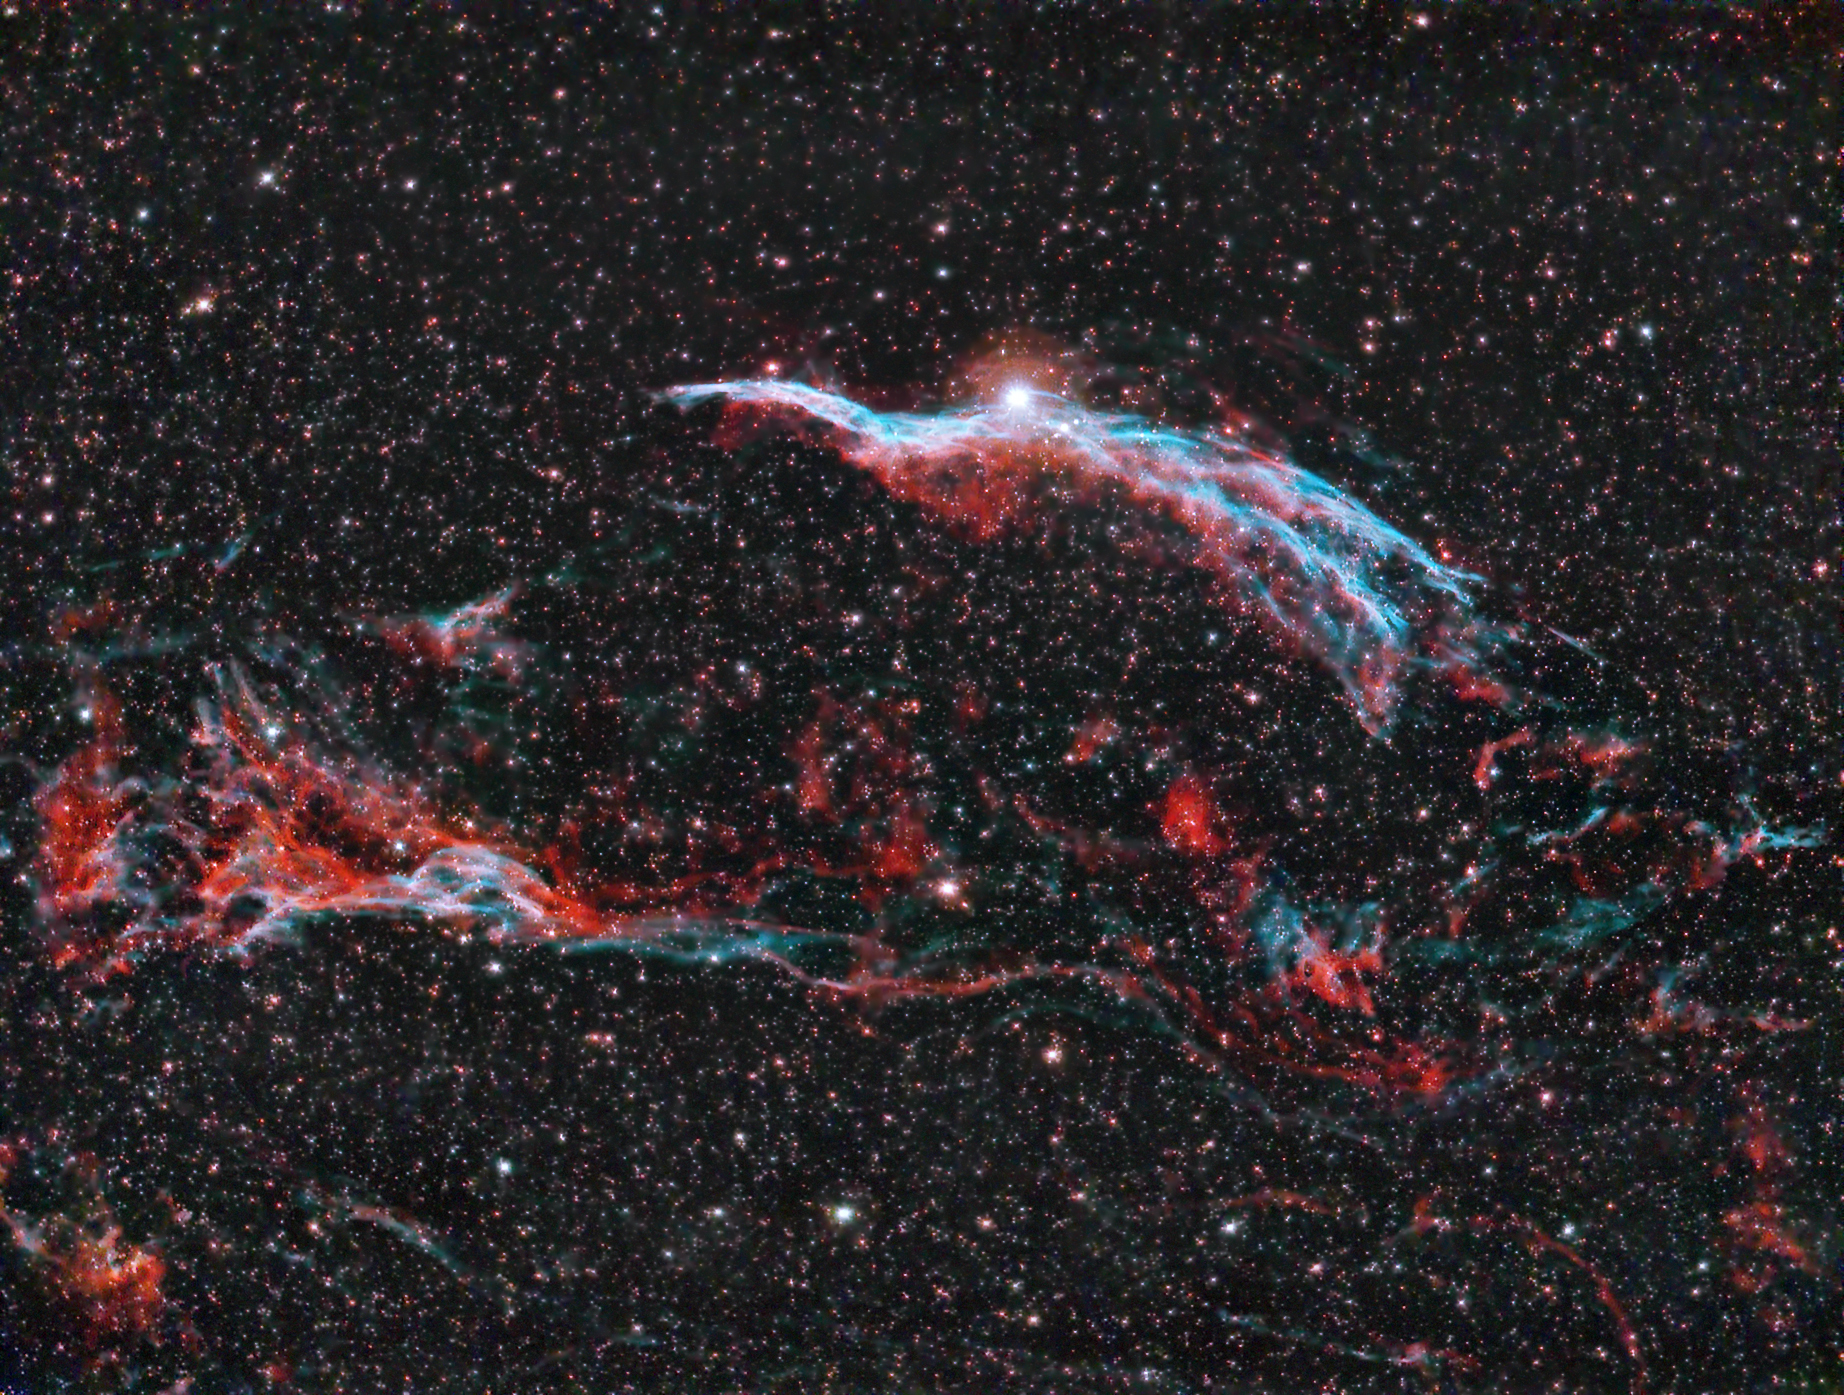 NGC6960_4days_highlight.jpg